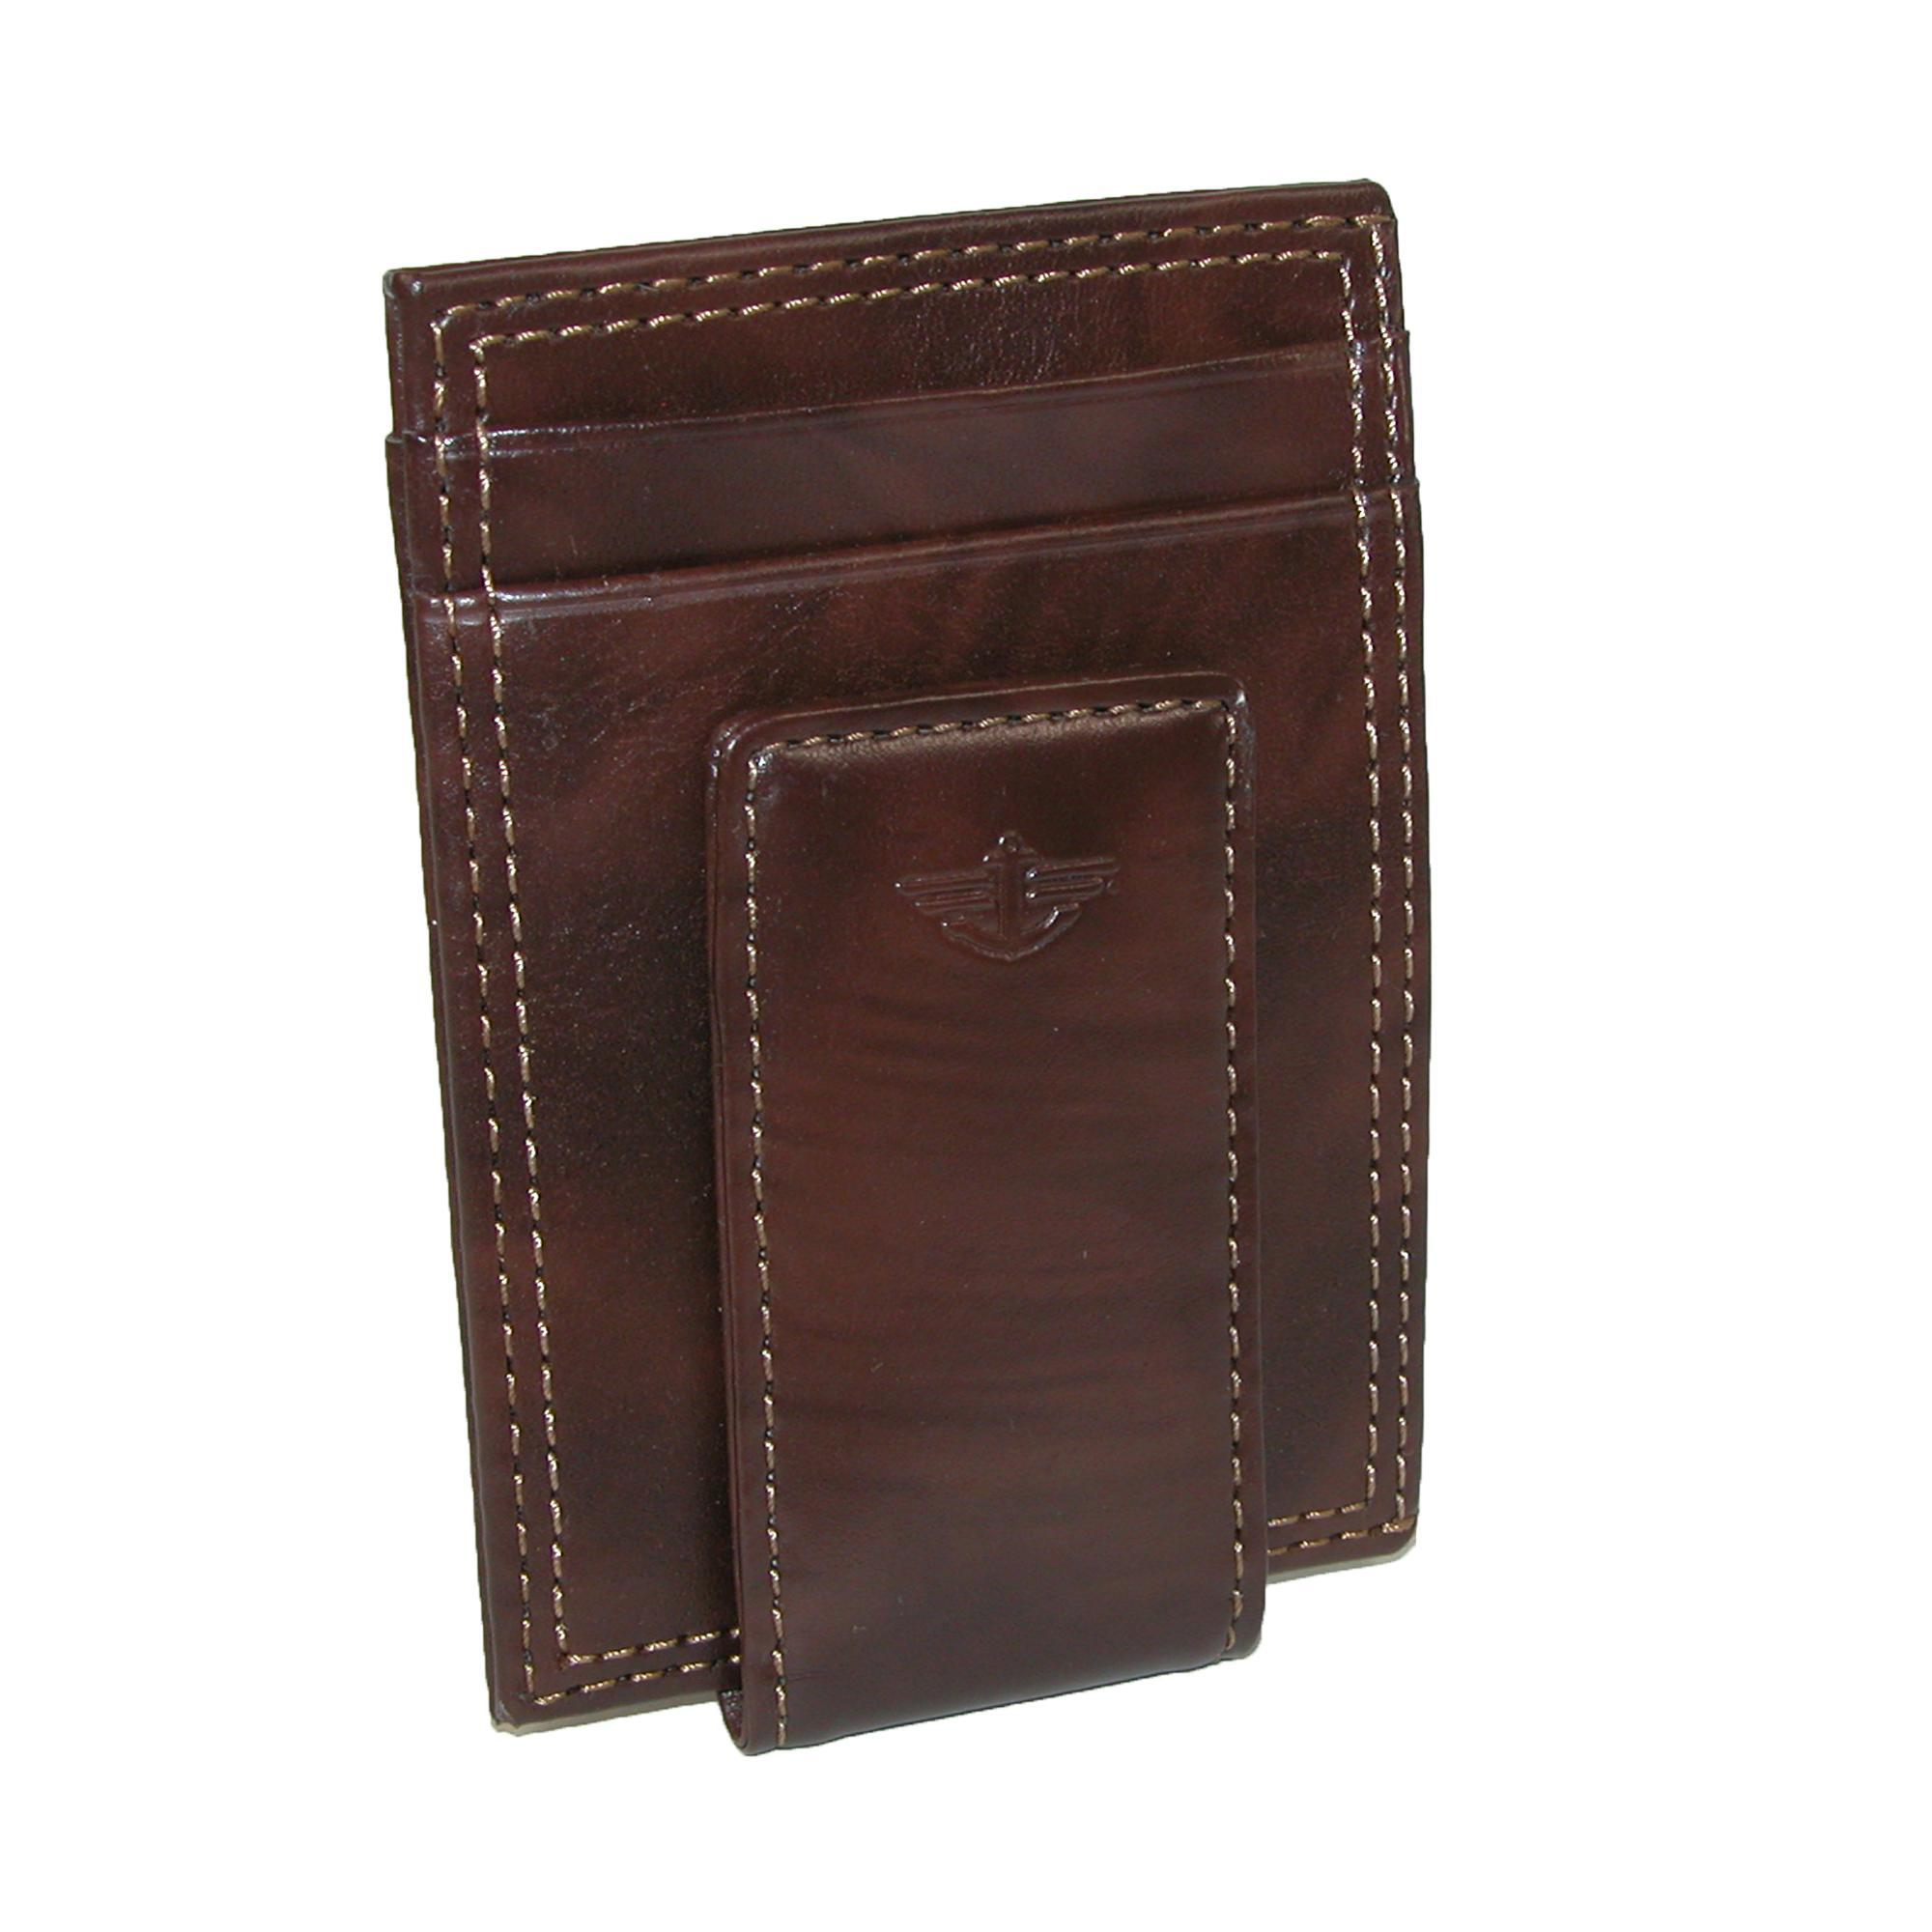 Dockers Men's Leather Slim Front Pocket Wallet With Magnetic Money Clip